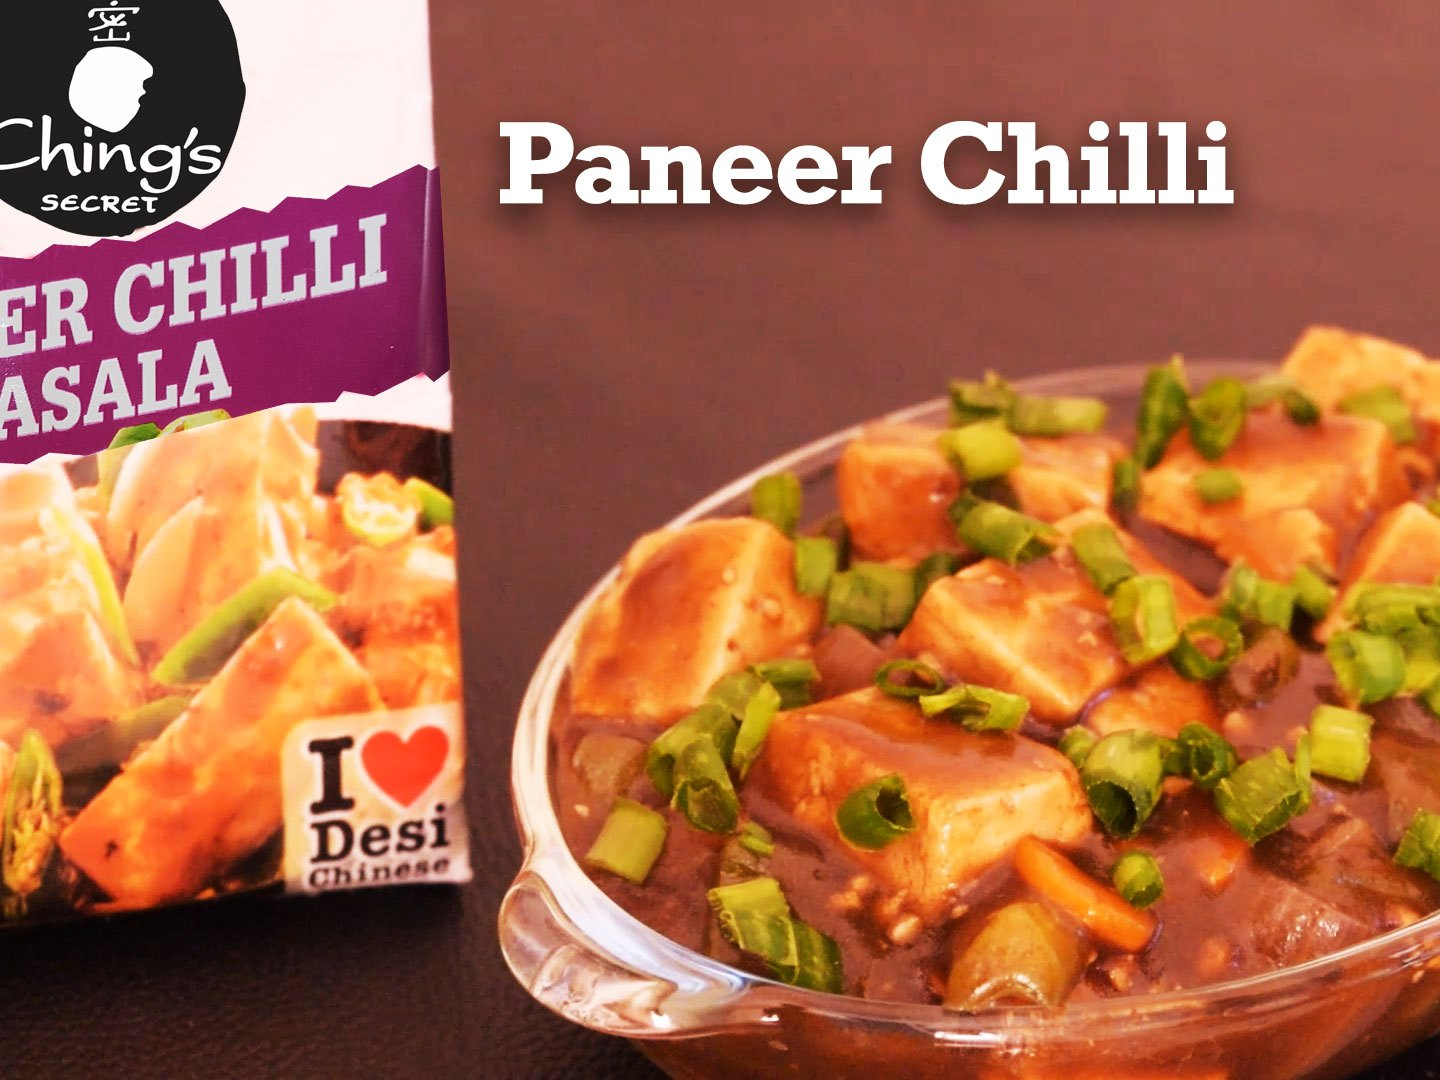 Paneer Chilli recipe step by step